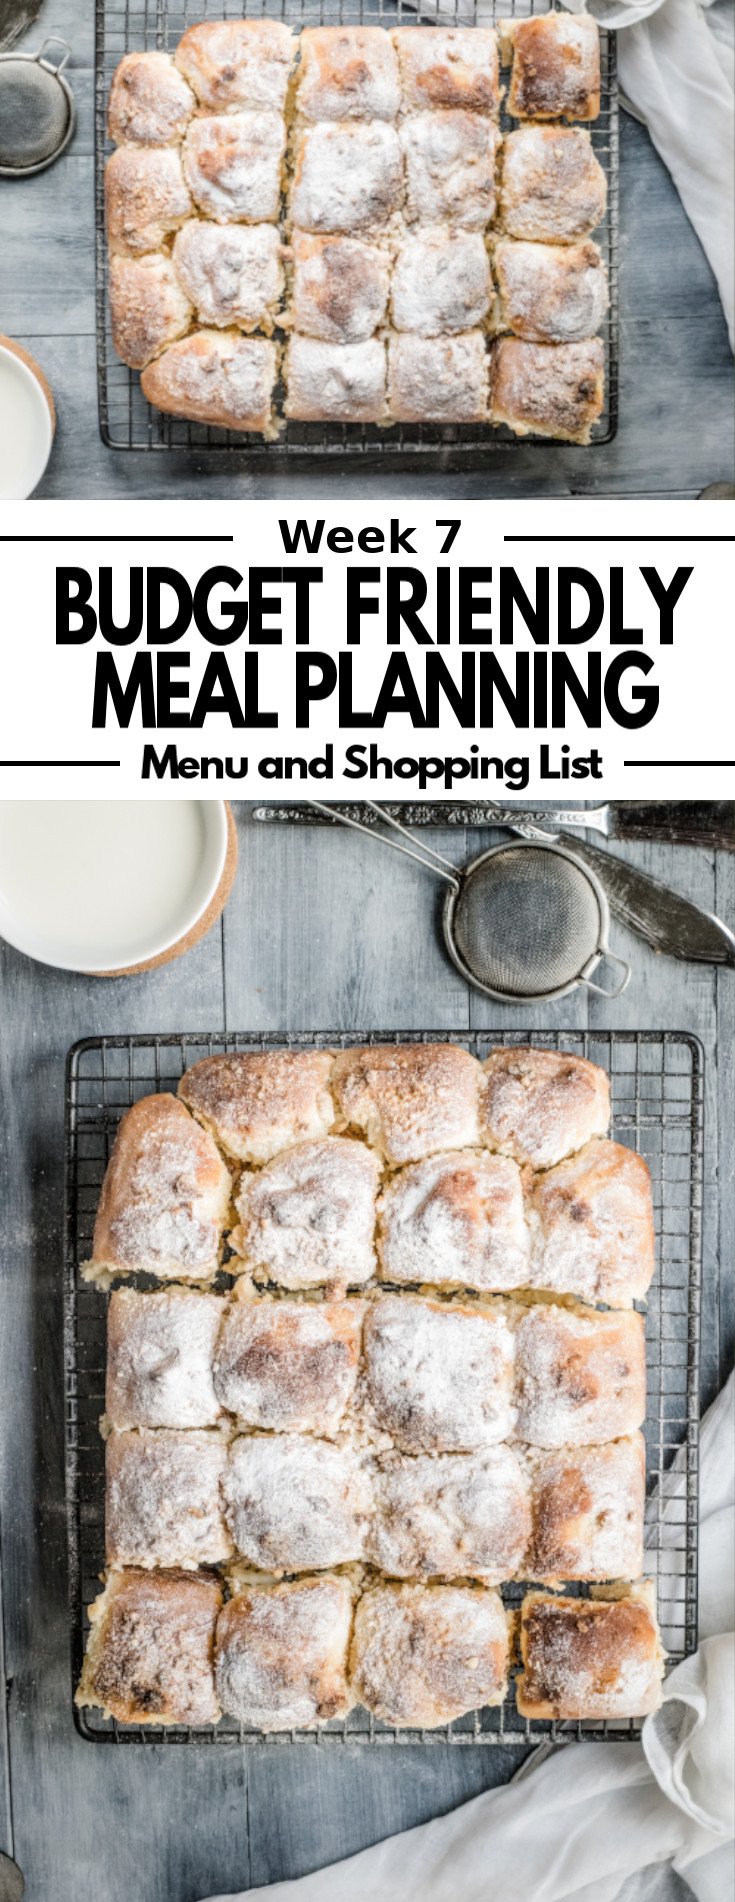 A delicious weekly meal plan and shopping list, featuring budget friendly dinner, side dish and dessert recipes.